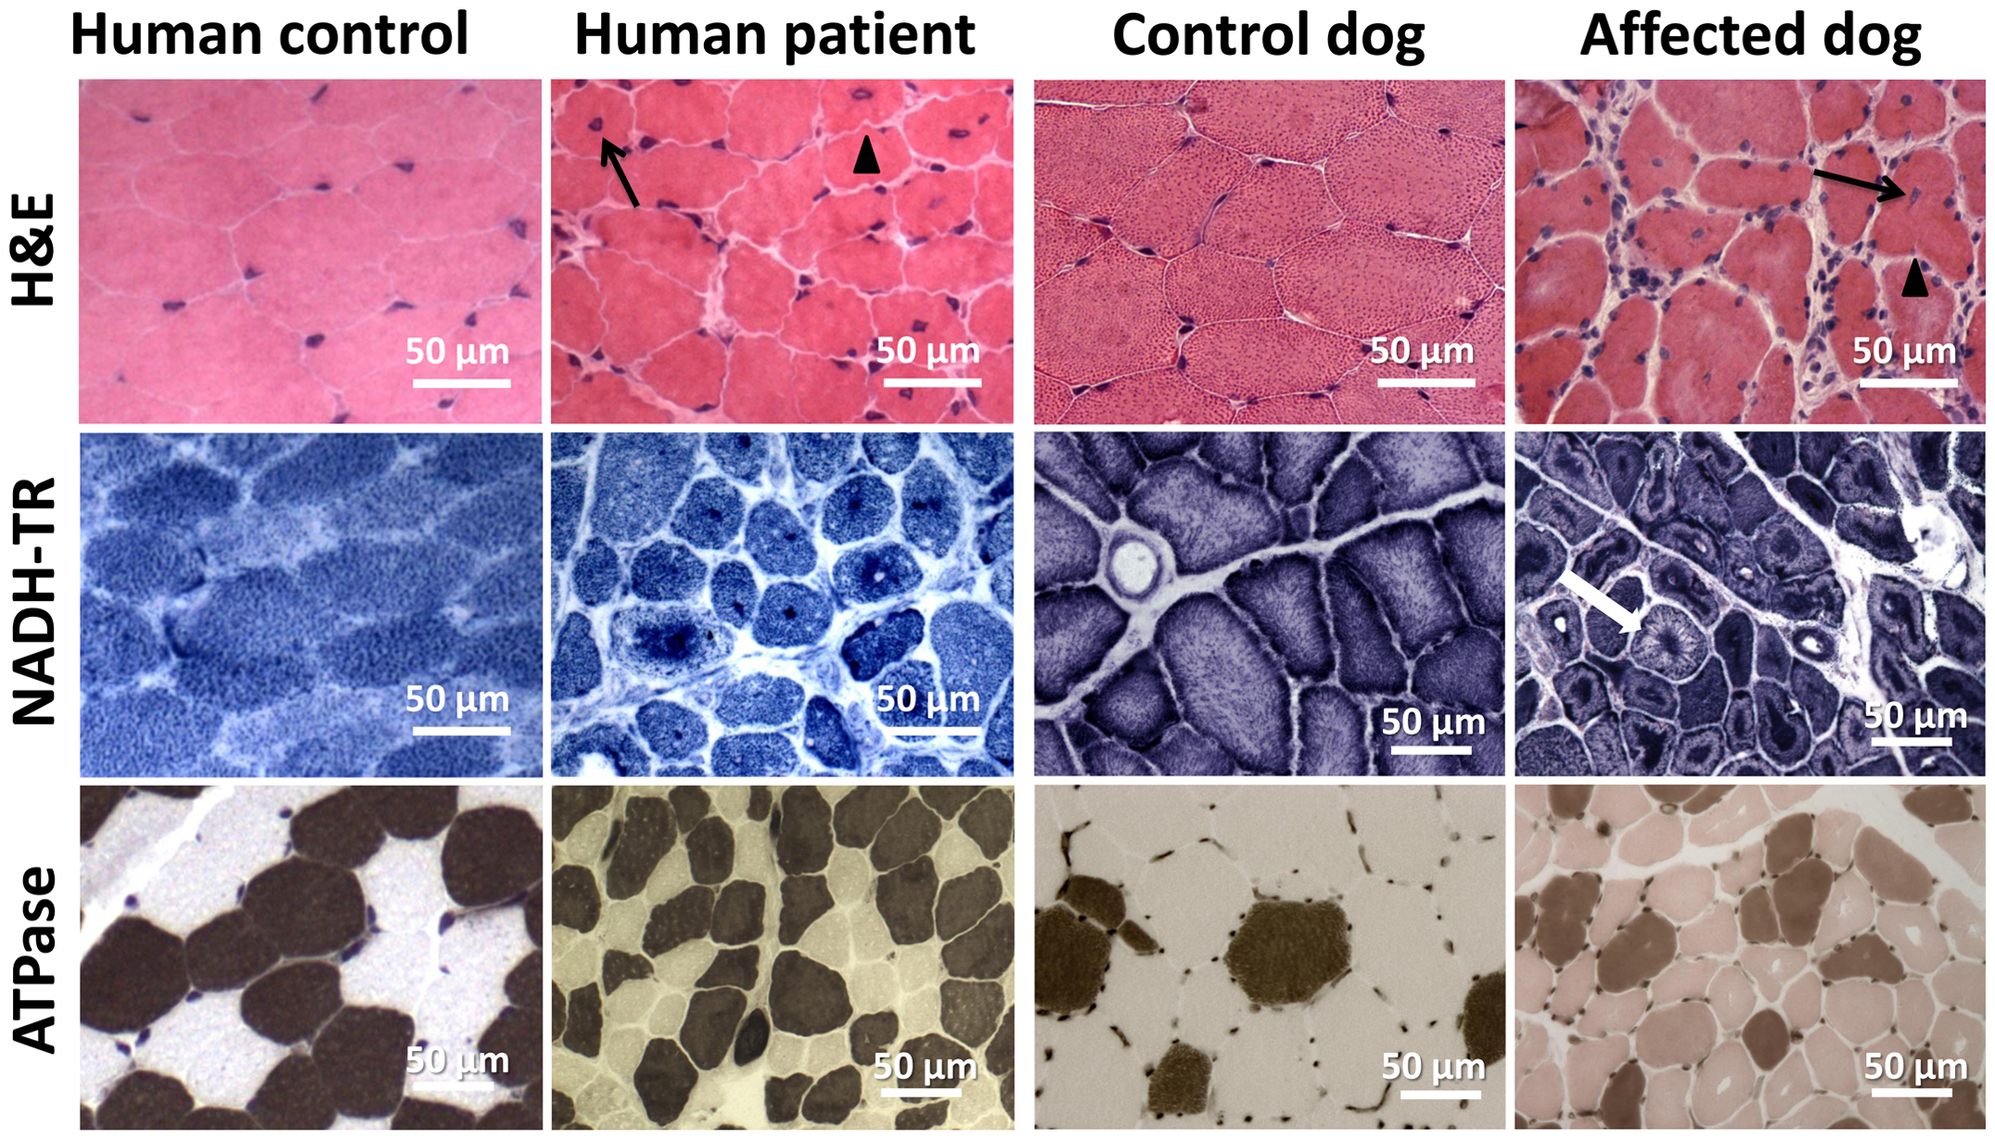 Histopathological comparison of muscles from human patient and IMGD dog.